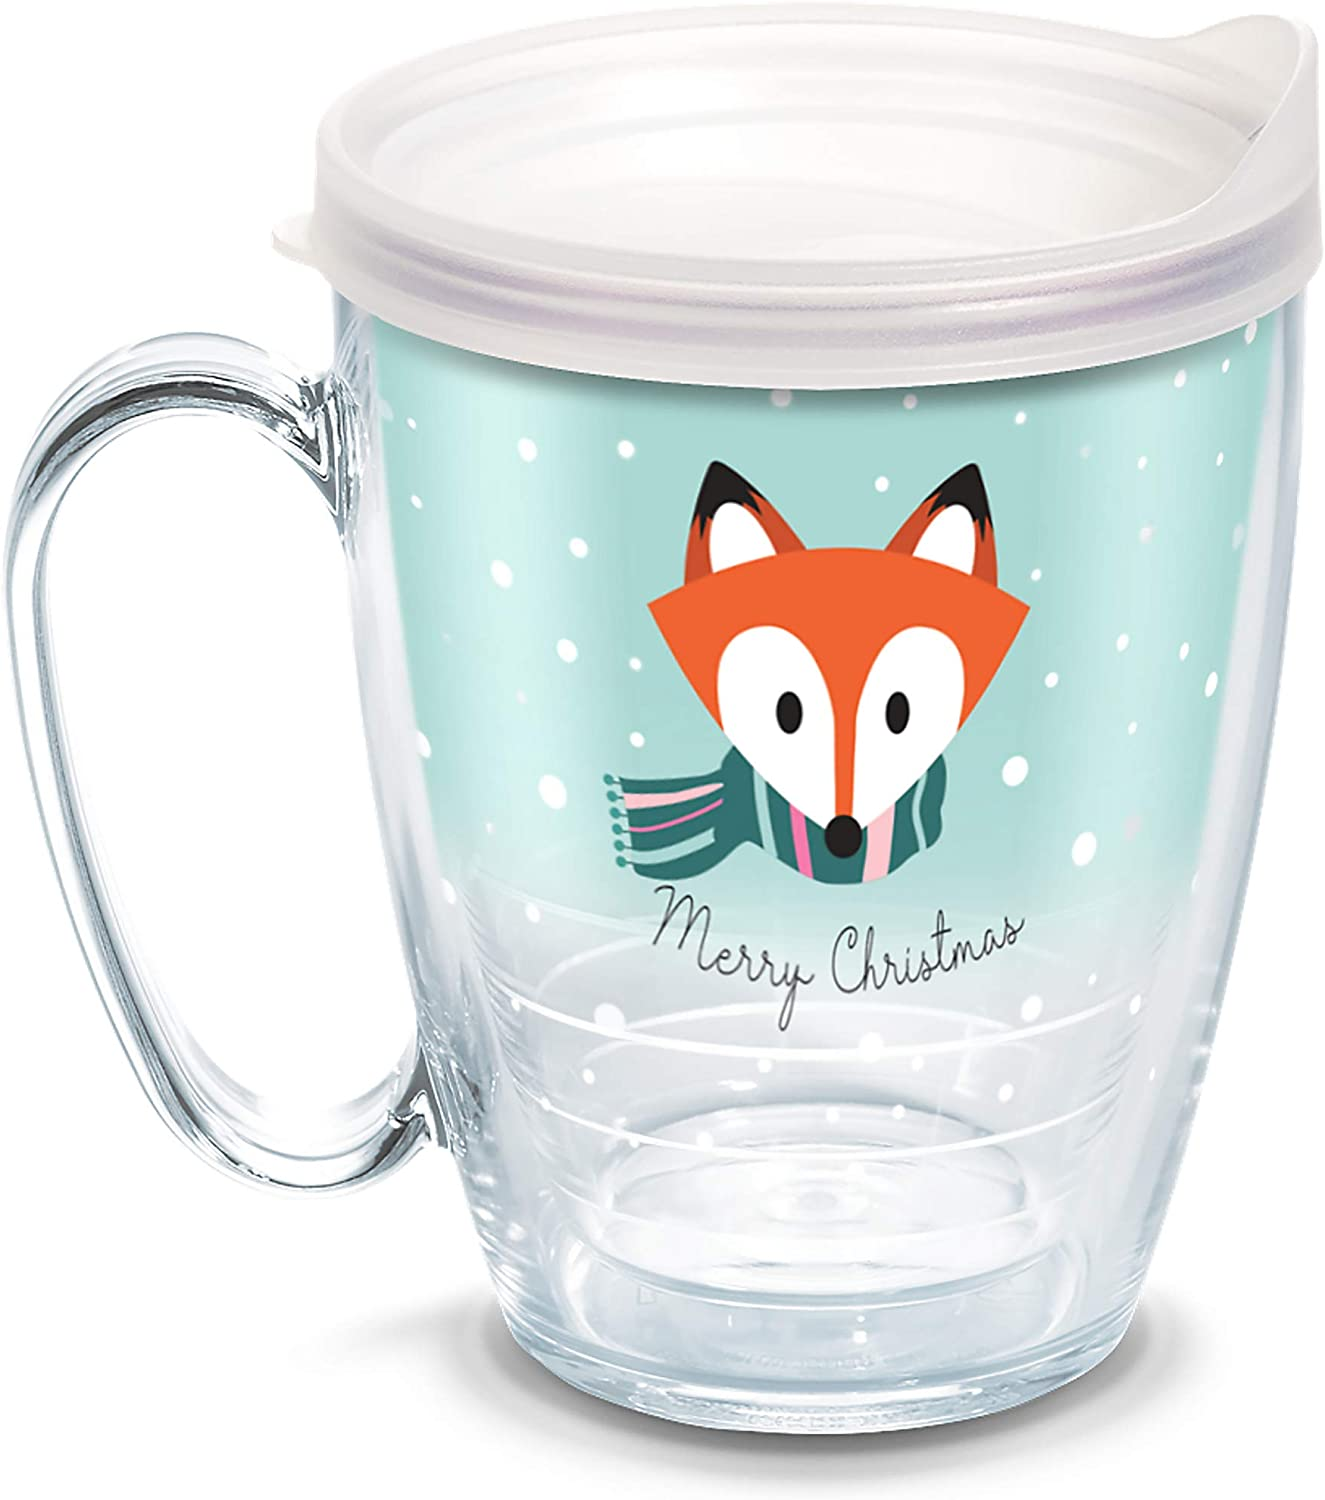 Tervis 1334971 Christmas Fox Insulated Tumbler with Wrap and Frosted Lid, 16 oz, Clear